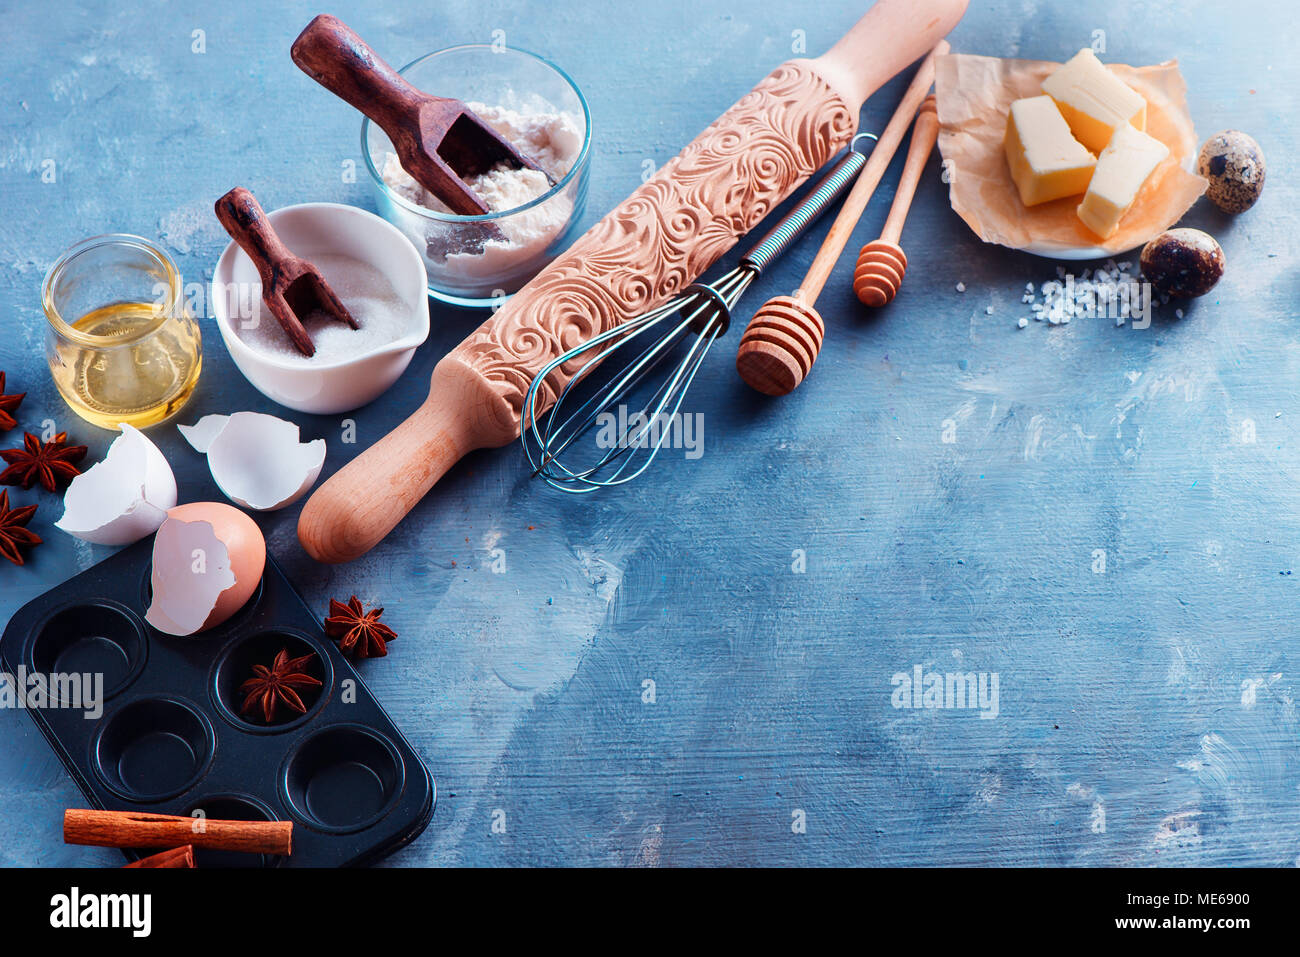 Header with baking ingredients and tools flat lay. Carved rolling pin, muffin tin, whisk and honey spoons in a home cooking concept with copy space. - Stock Image